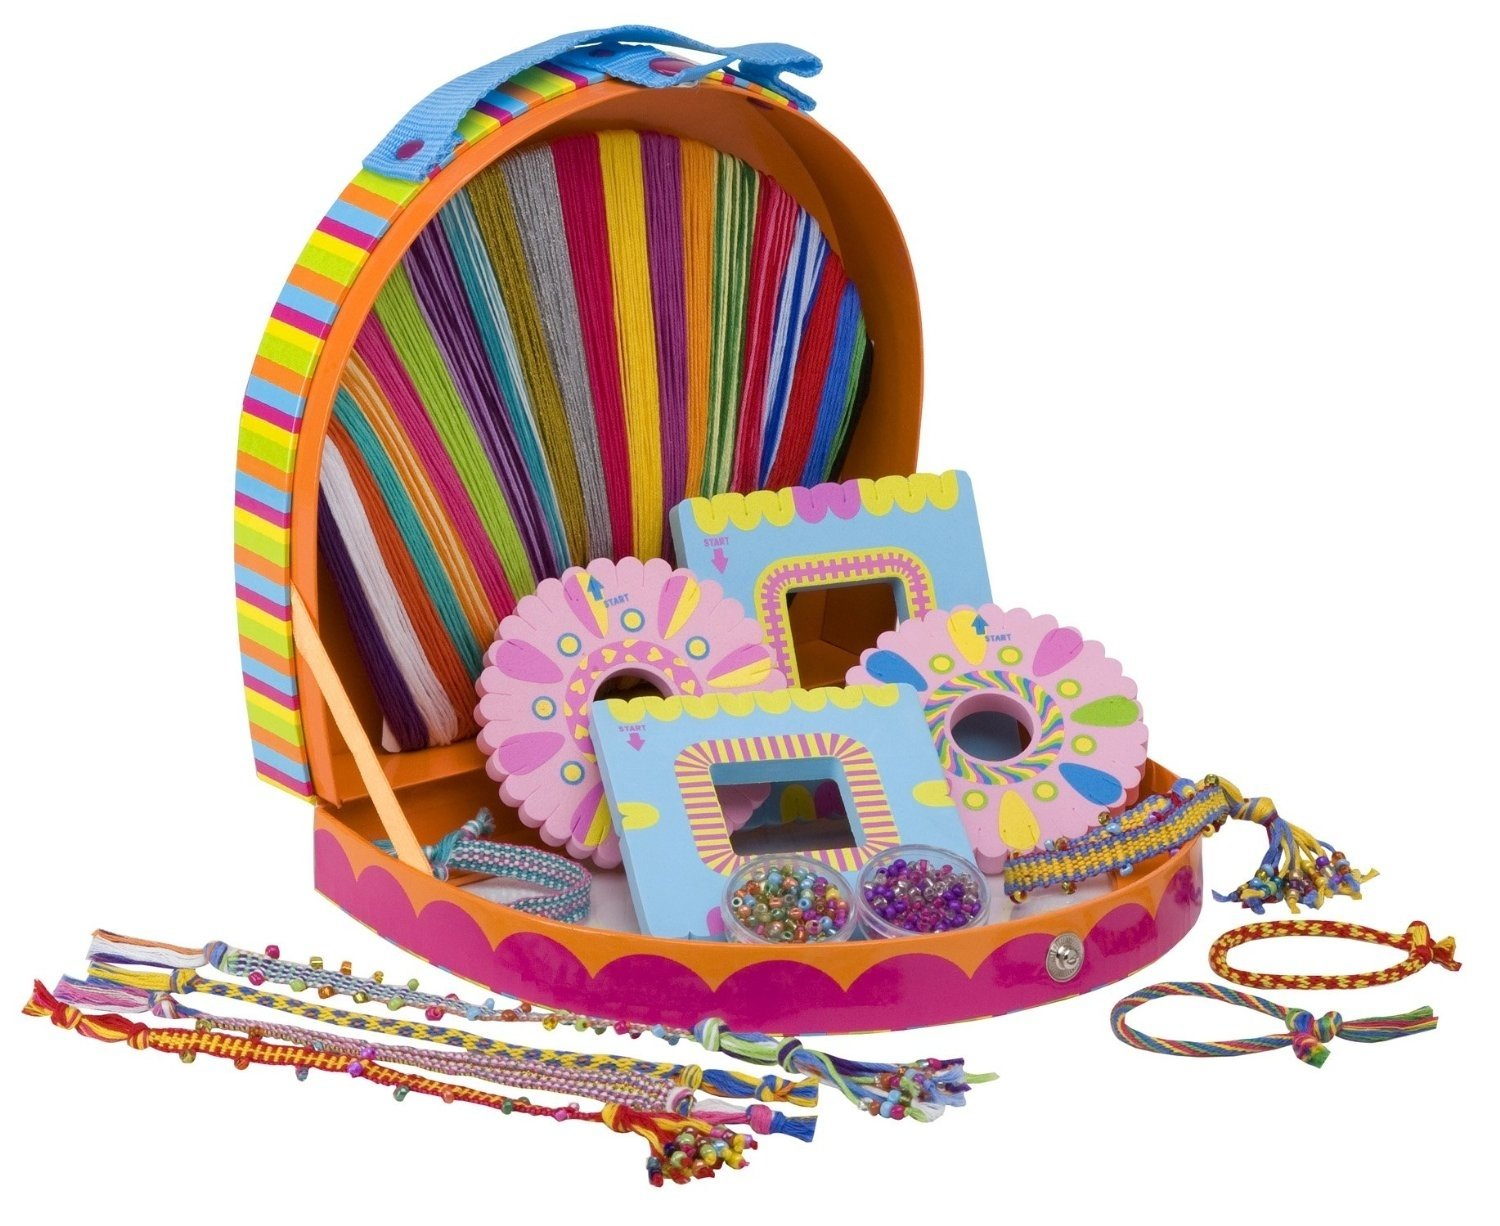 10 Wonderful Gift Ideas For 8 Year Old Girls best gifts for 8 year old girls ur kids world 1 2021